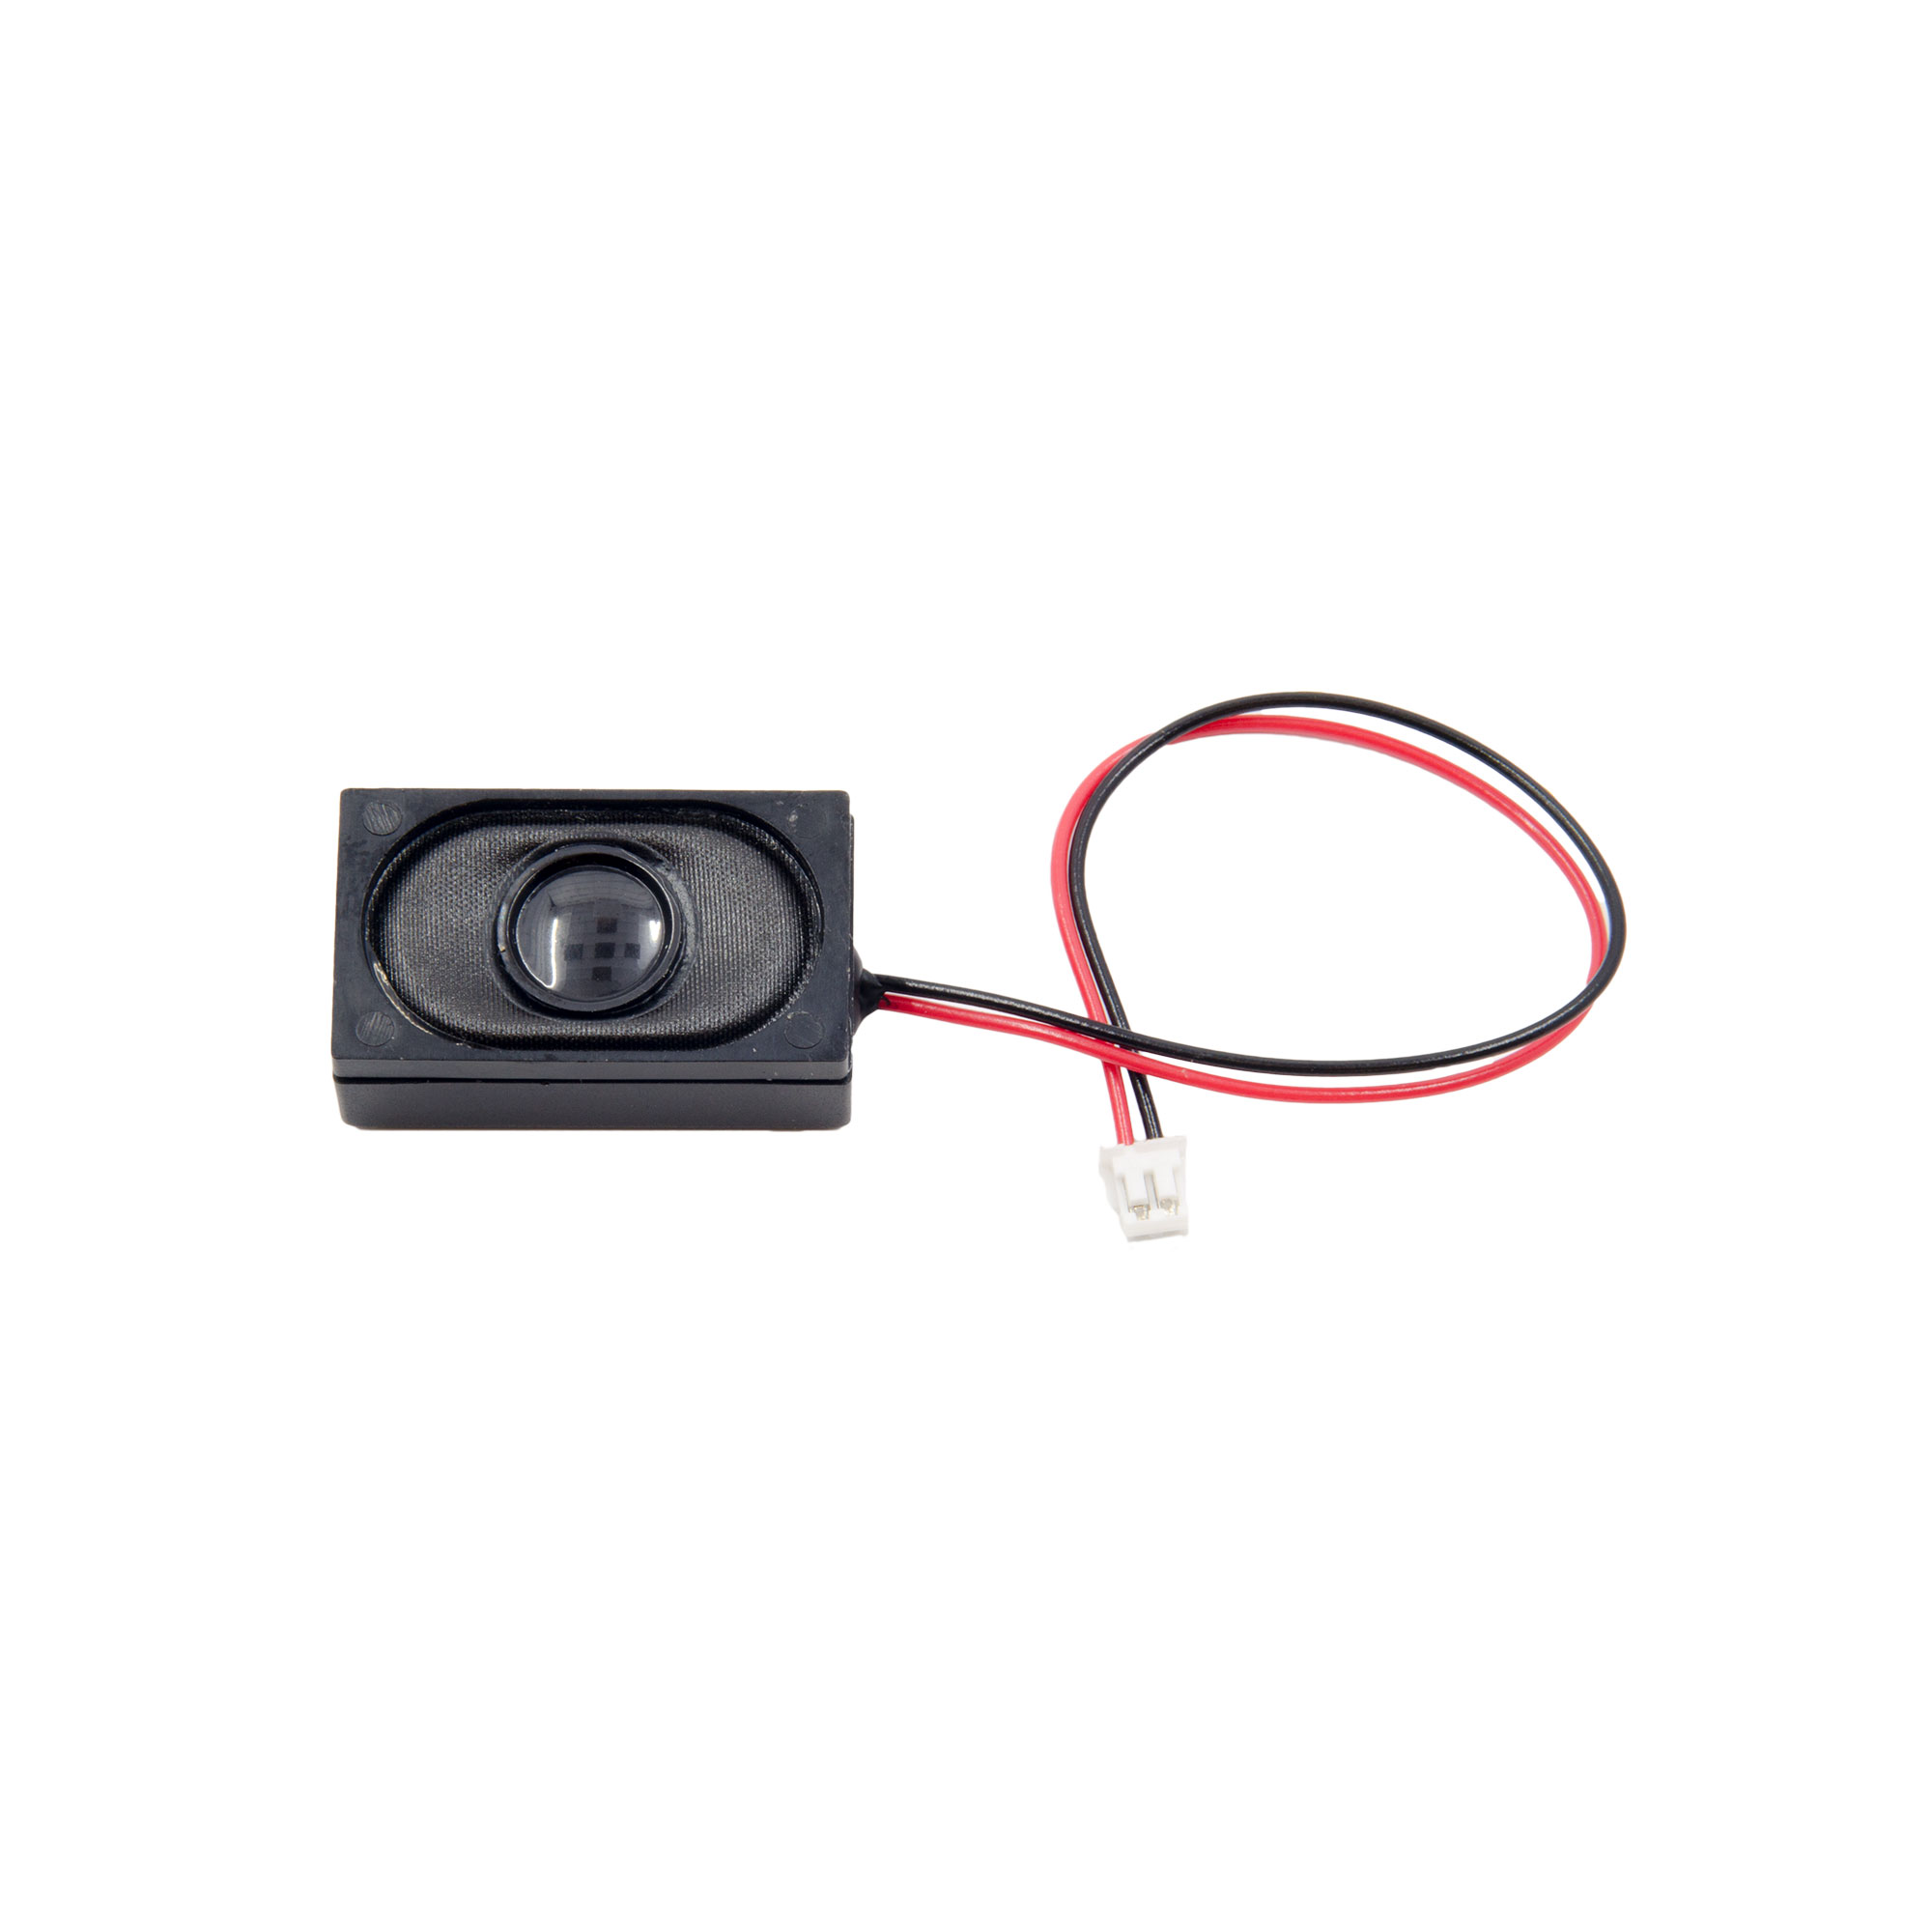 compact rectangular box 26 5mm x 15 5mm x 9mm speaker 8 ohms